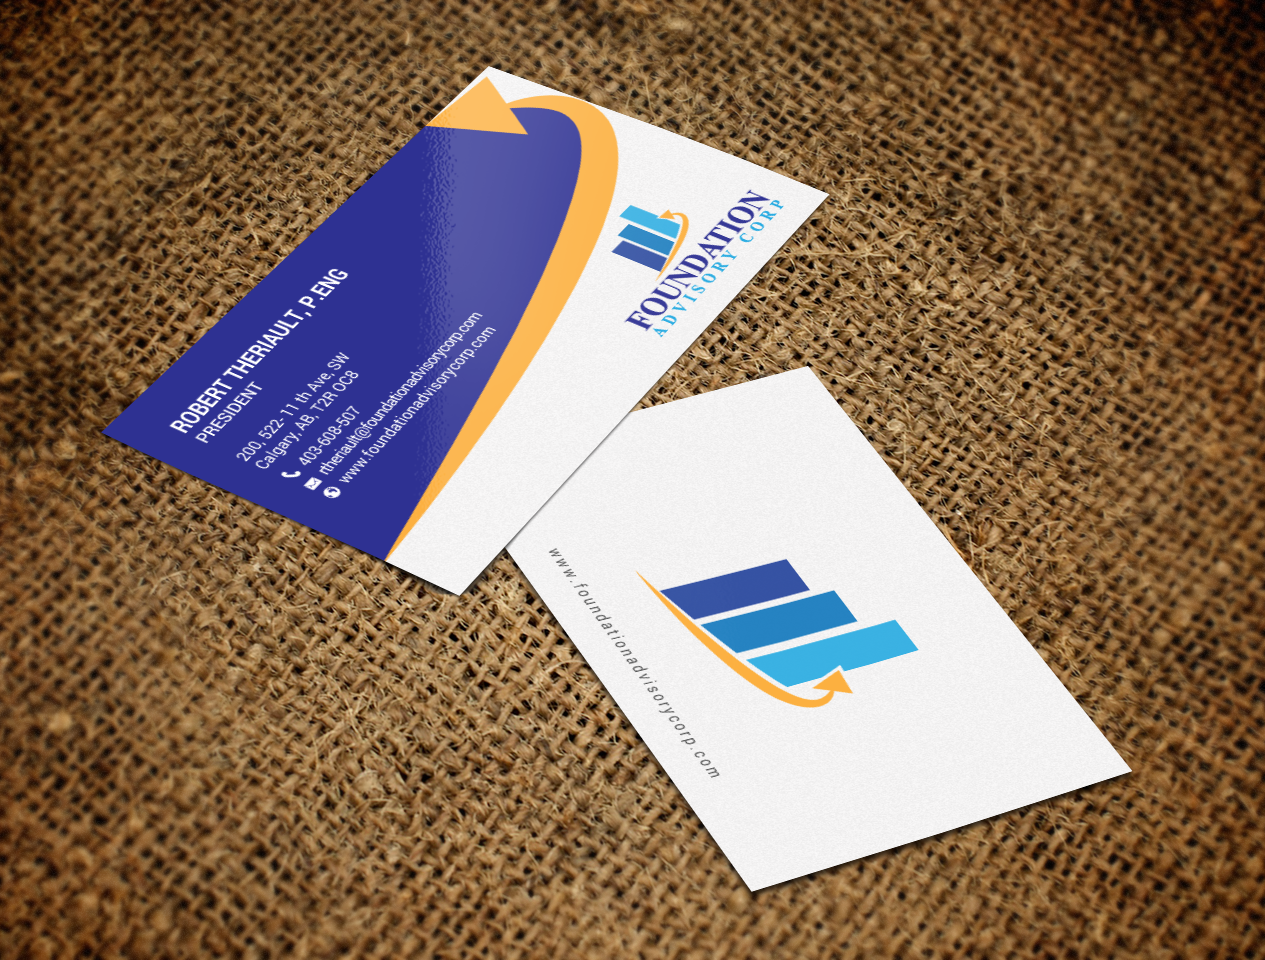 Serious professional consulting business card design for business card design by chandrayaaneative for copperwood ventures inc design 17232306 reheart Choice Image